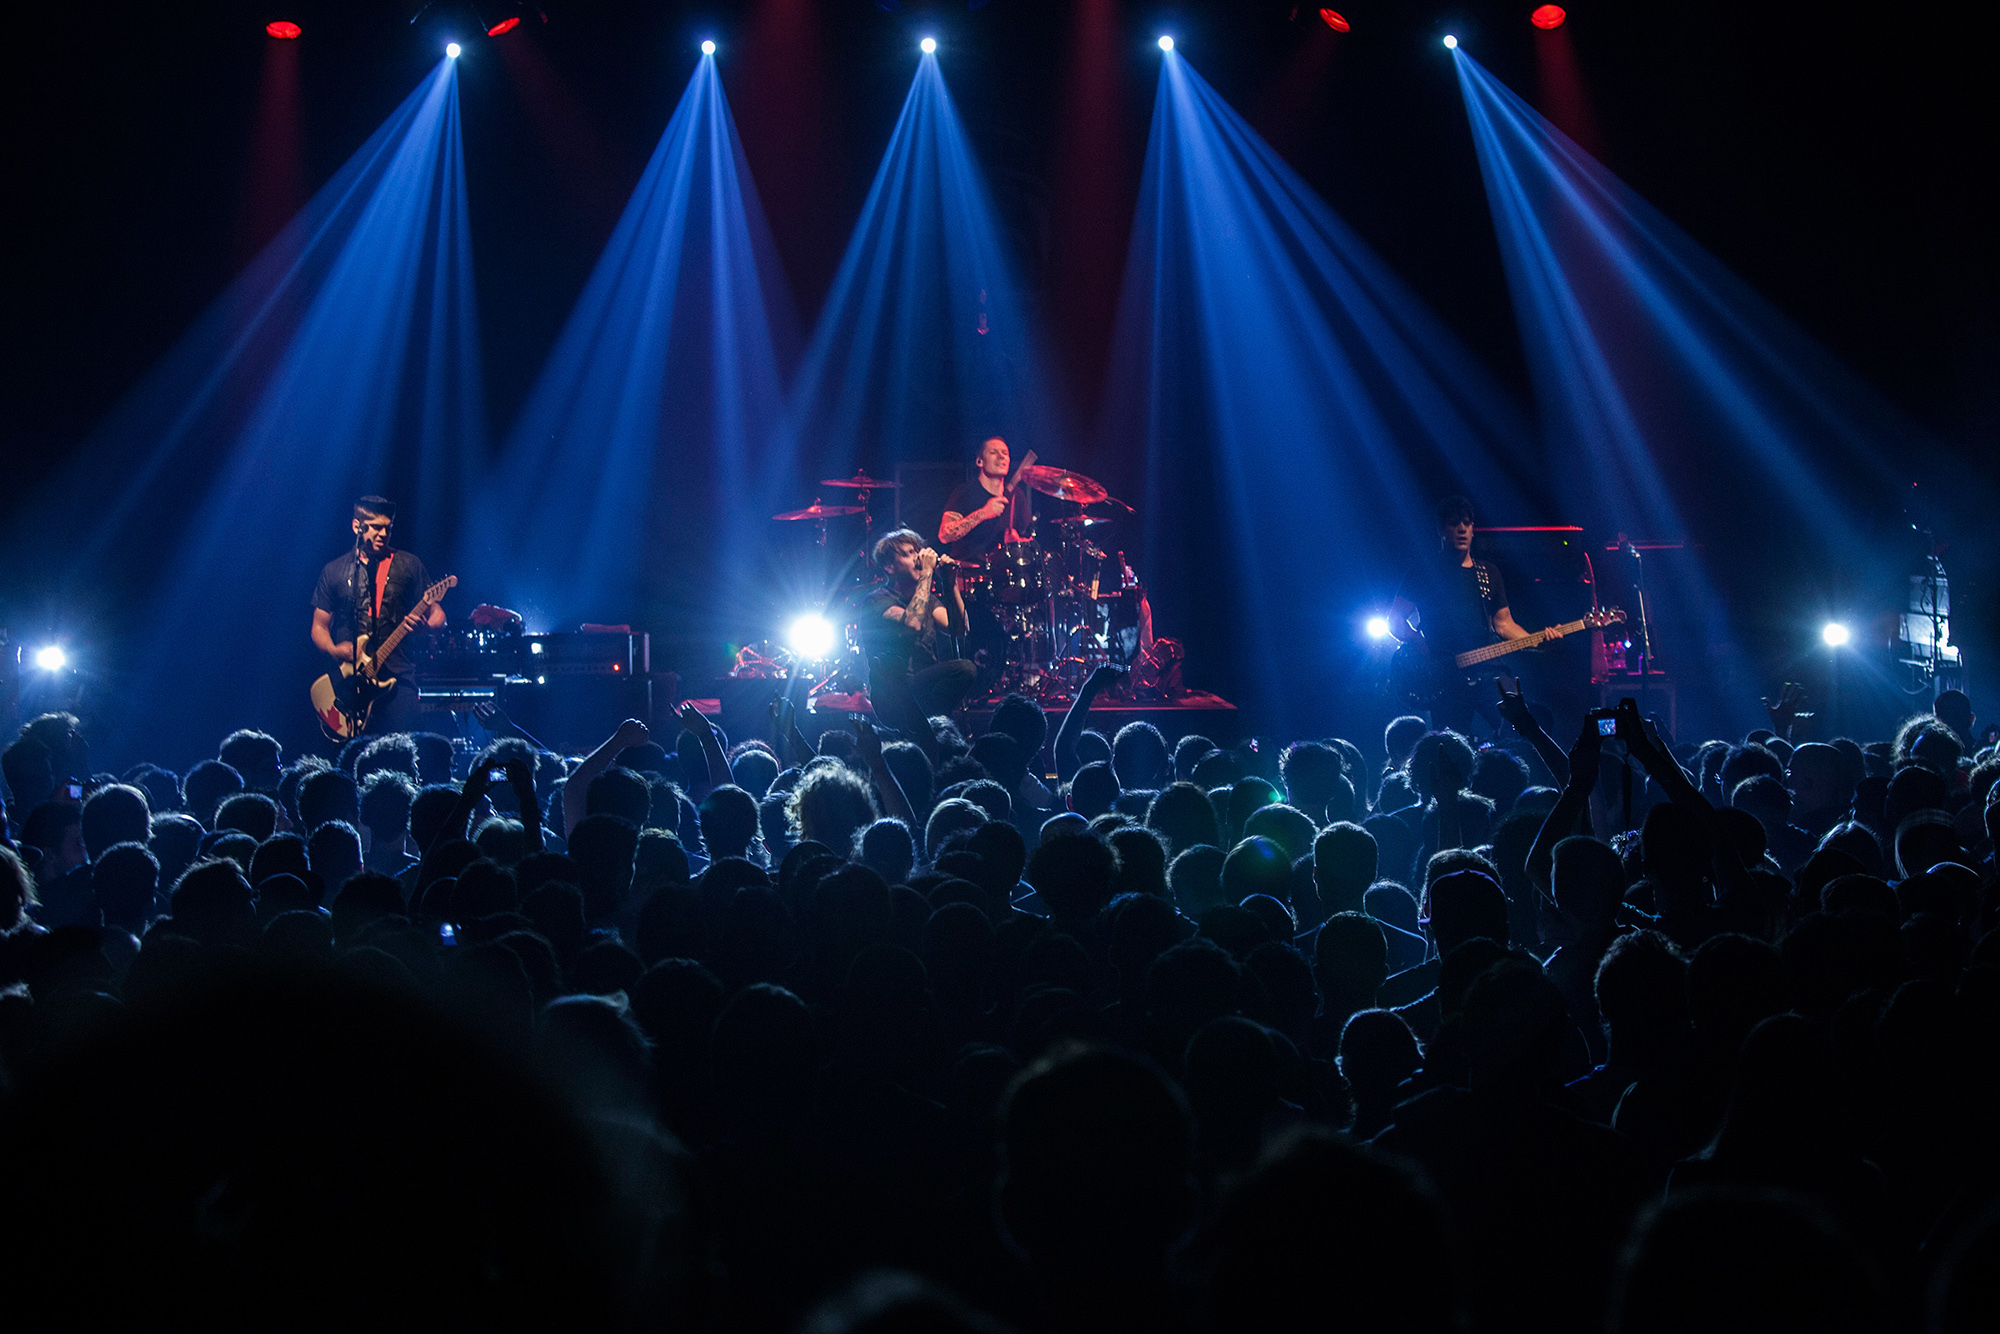 billy-talent-a-paris-concert-01